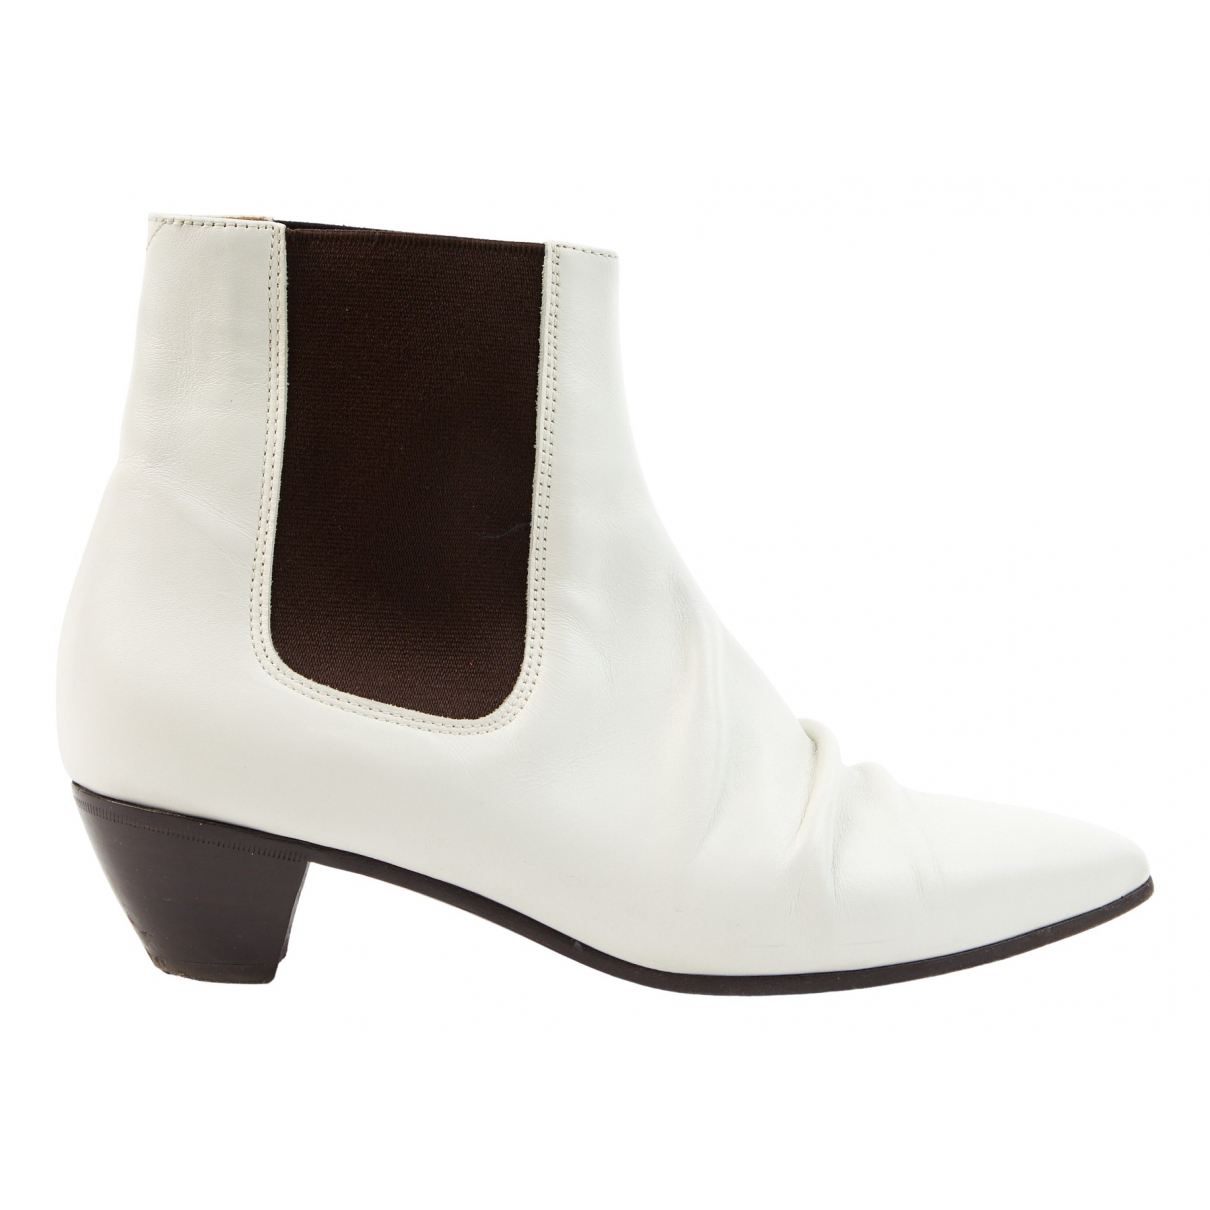 Celine N Ecru Leather Ankle boots for Women 39 EU